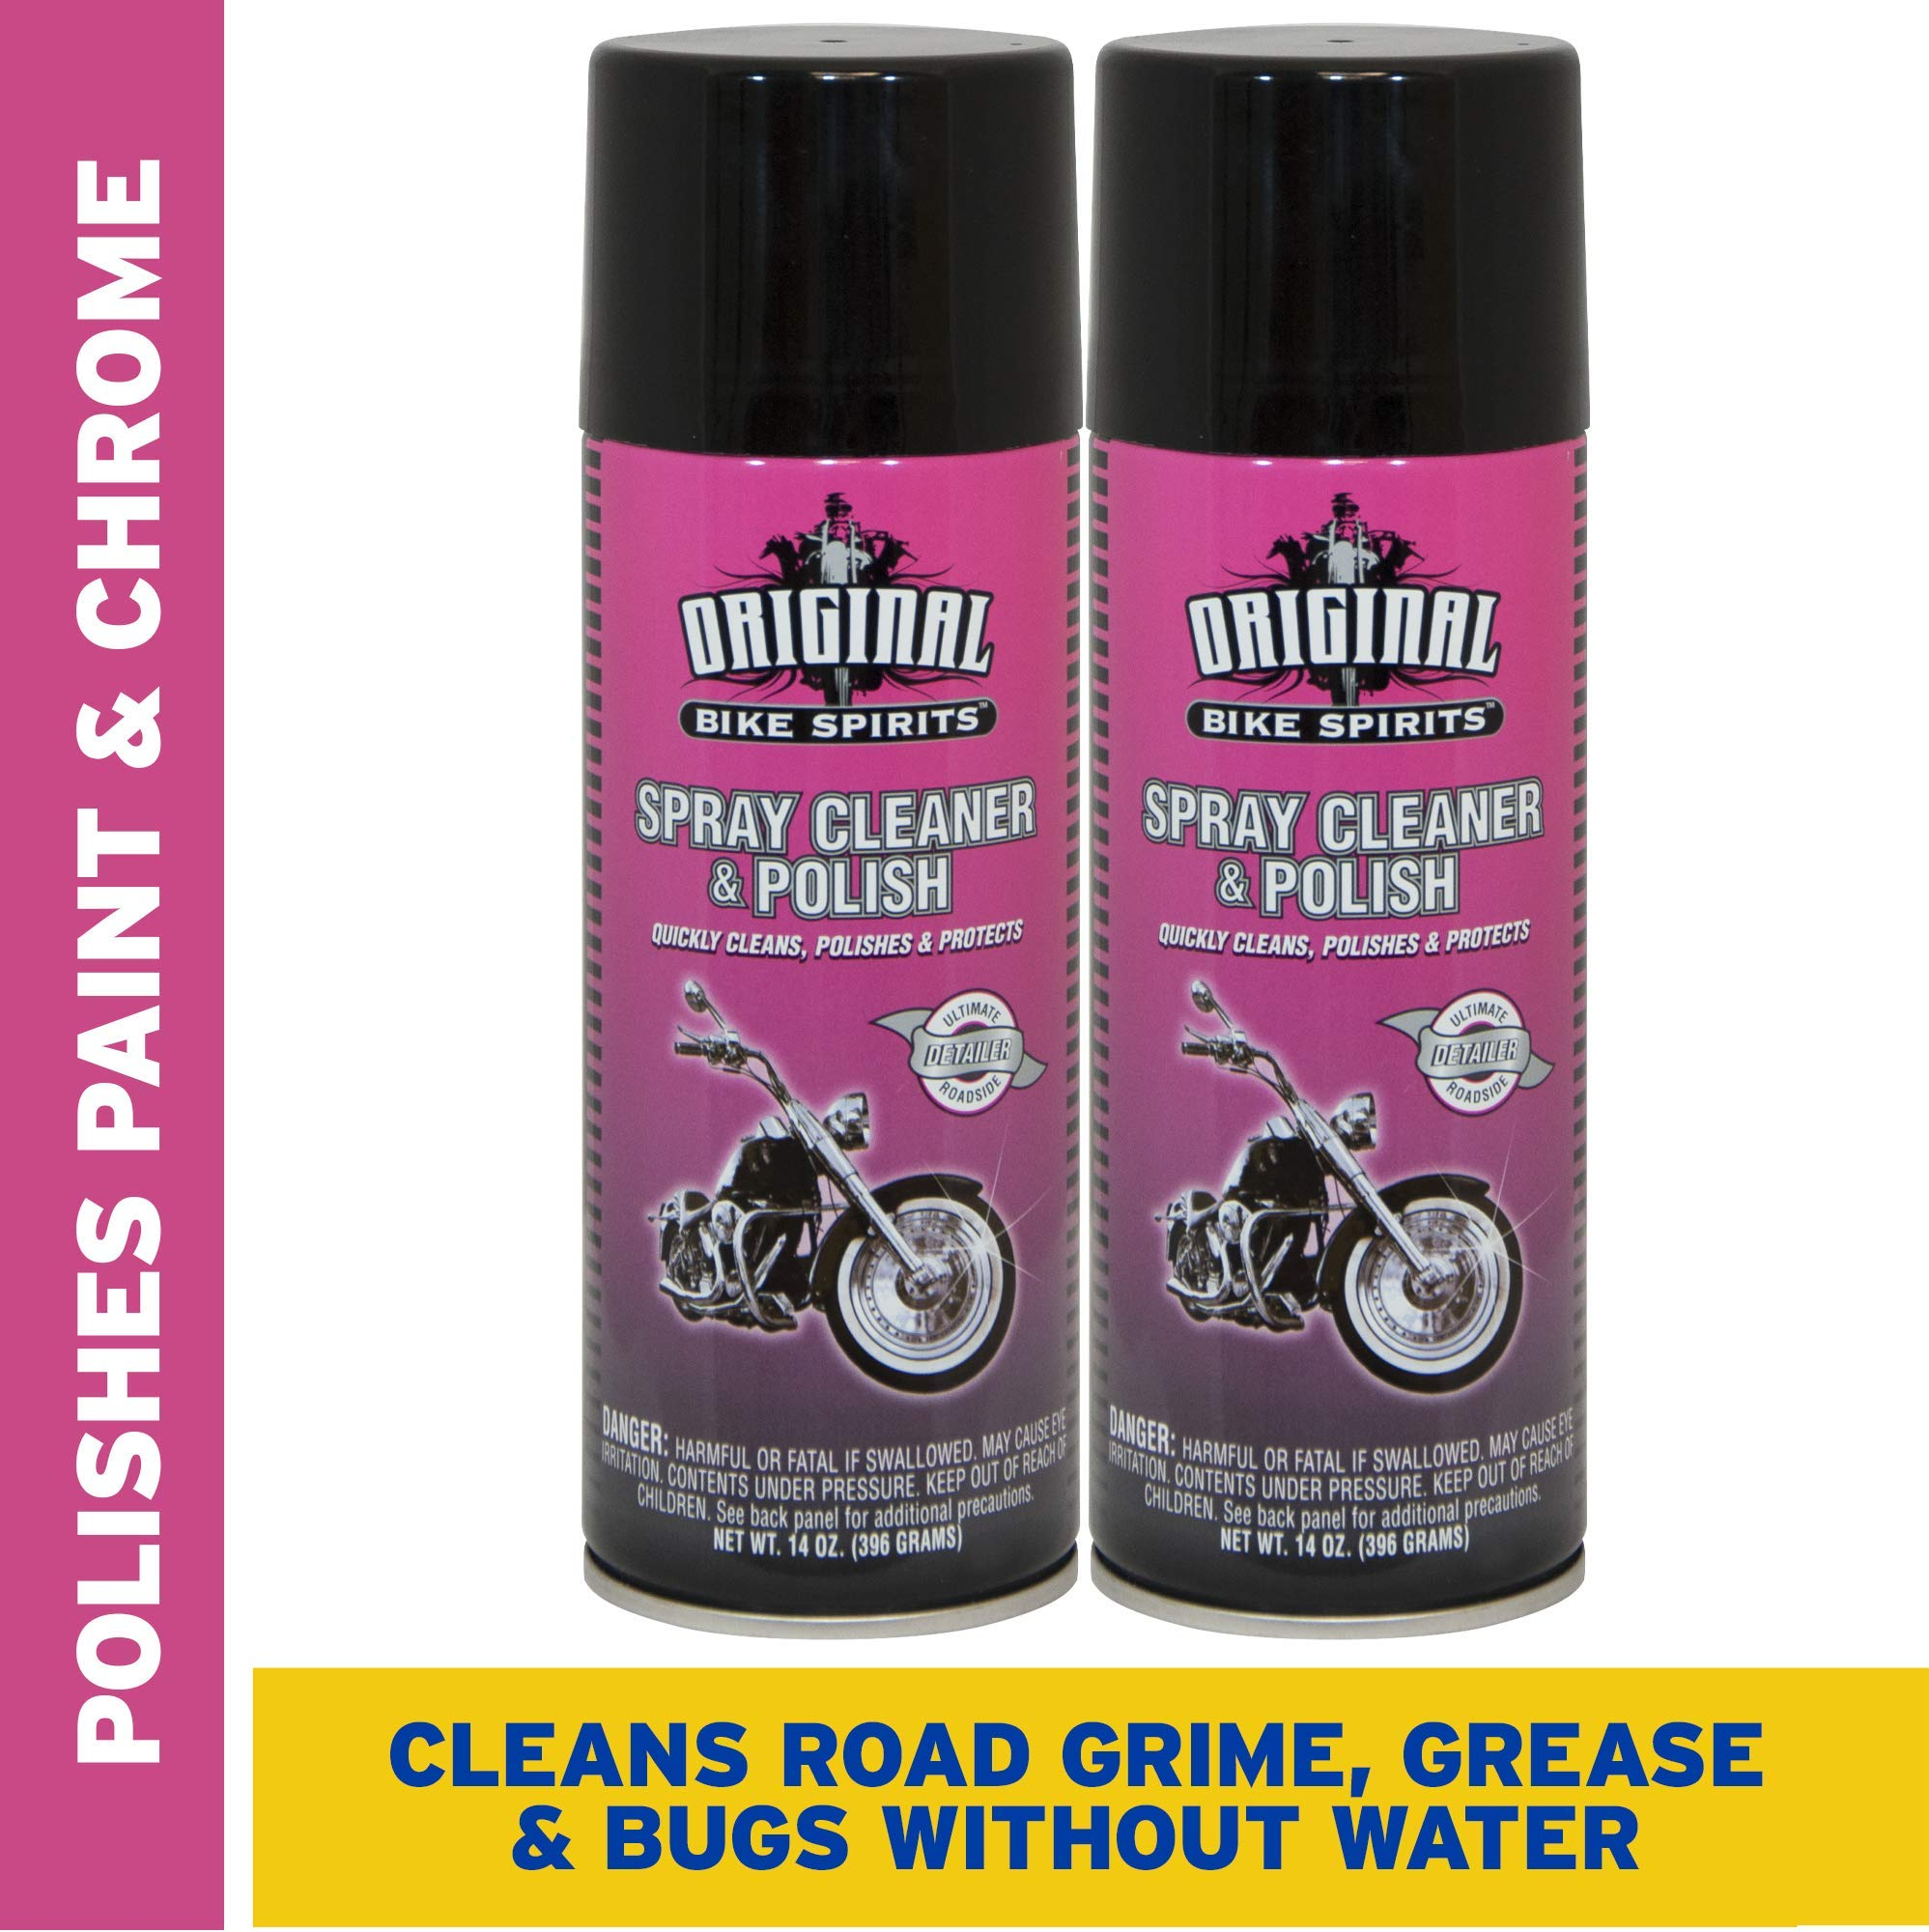 Original Bike Spirits Cleaner and Polish 16 Ounce (Pack of 2)